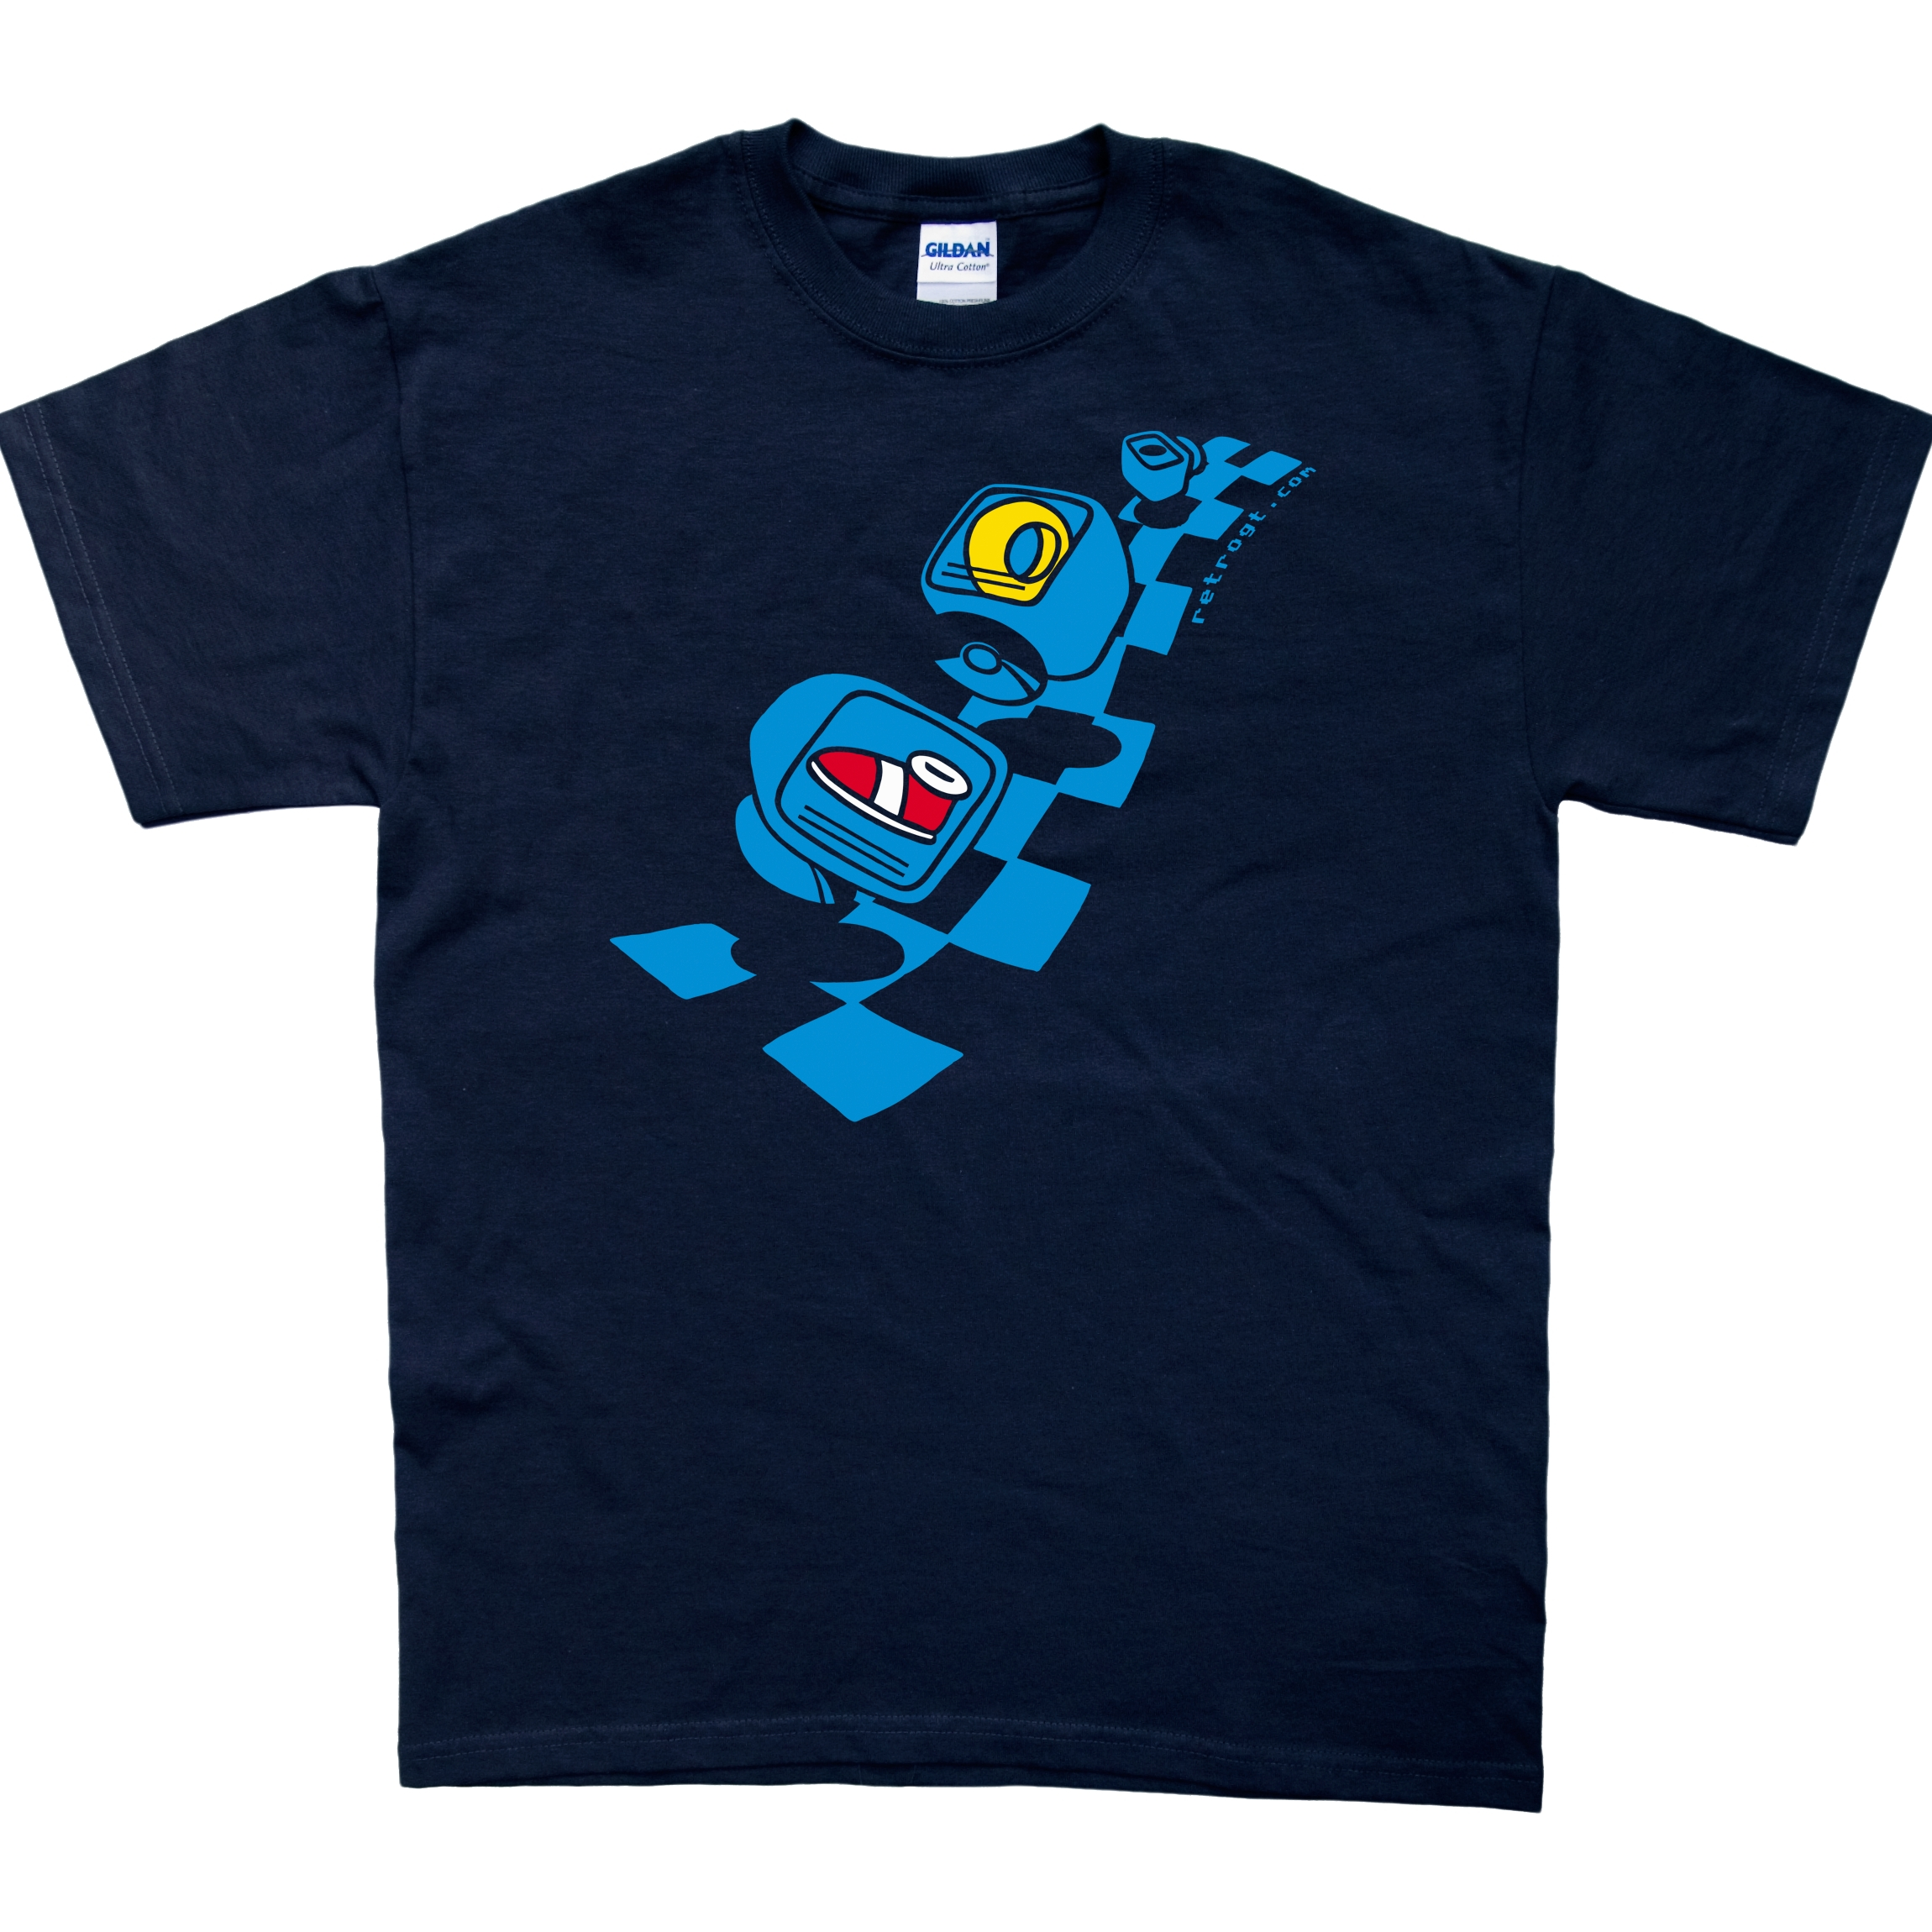 Photograph: Green Hill Zone Power-Ups T-Shirt